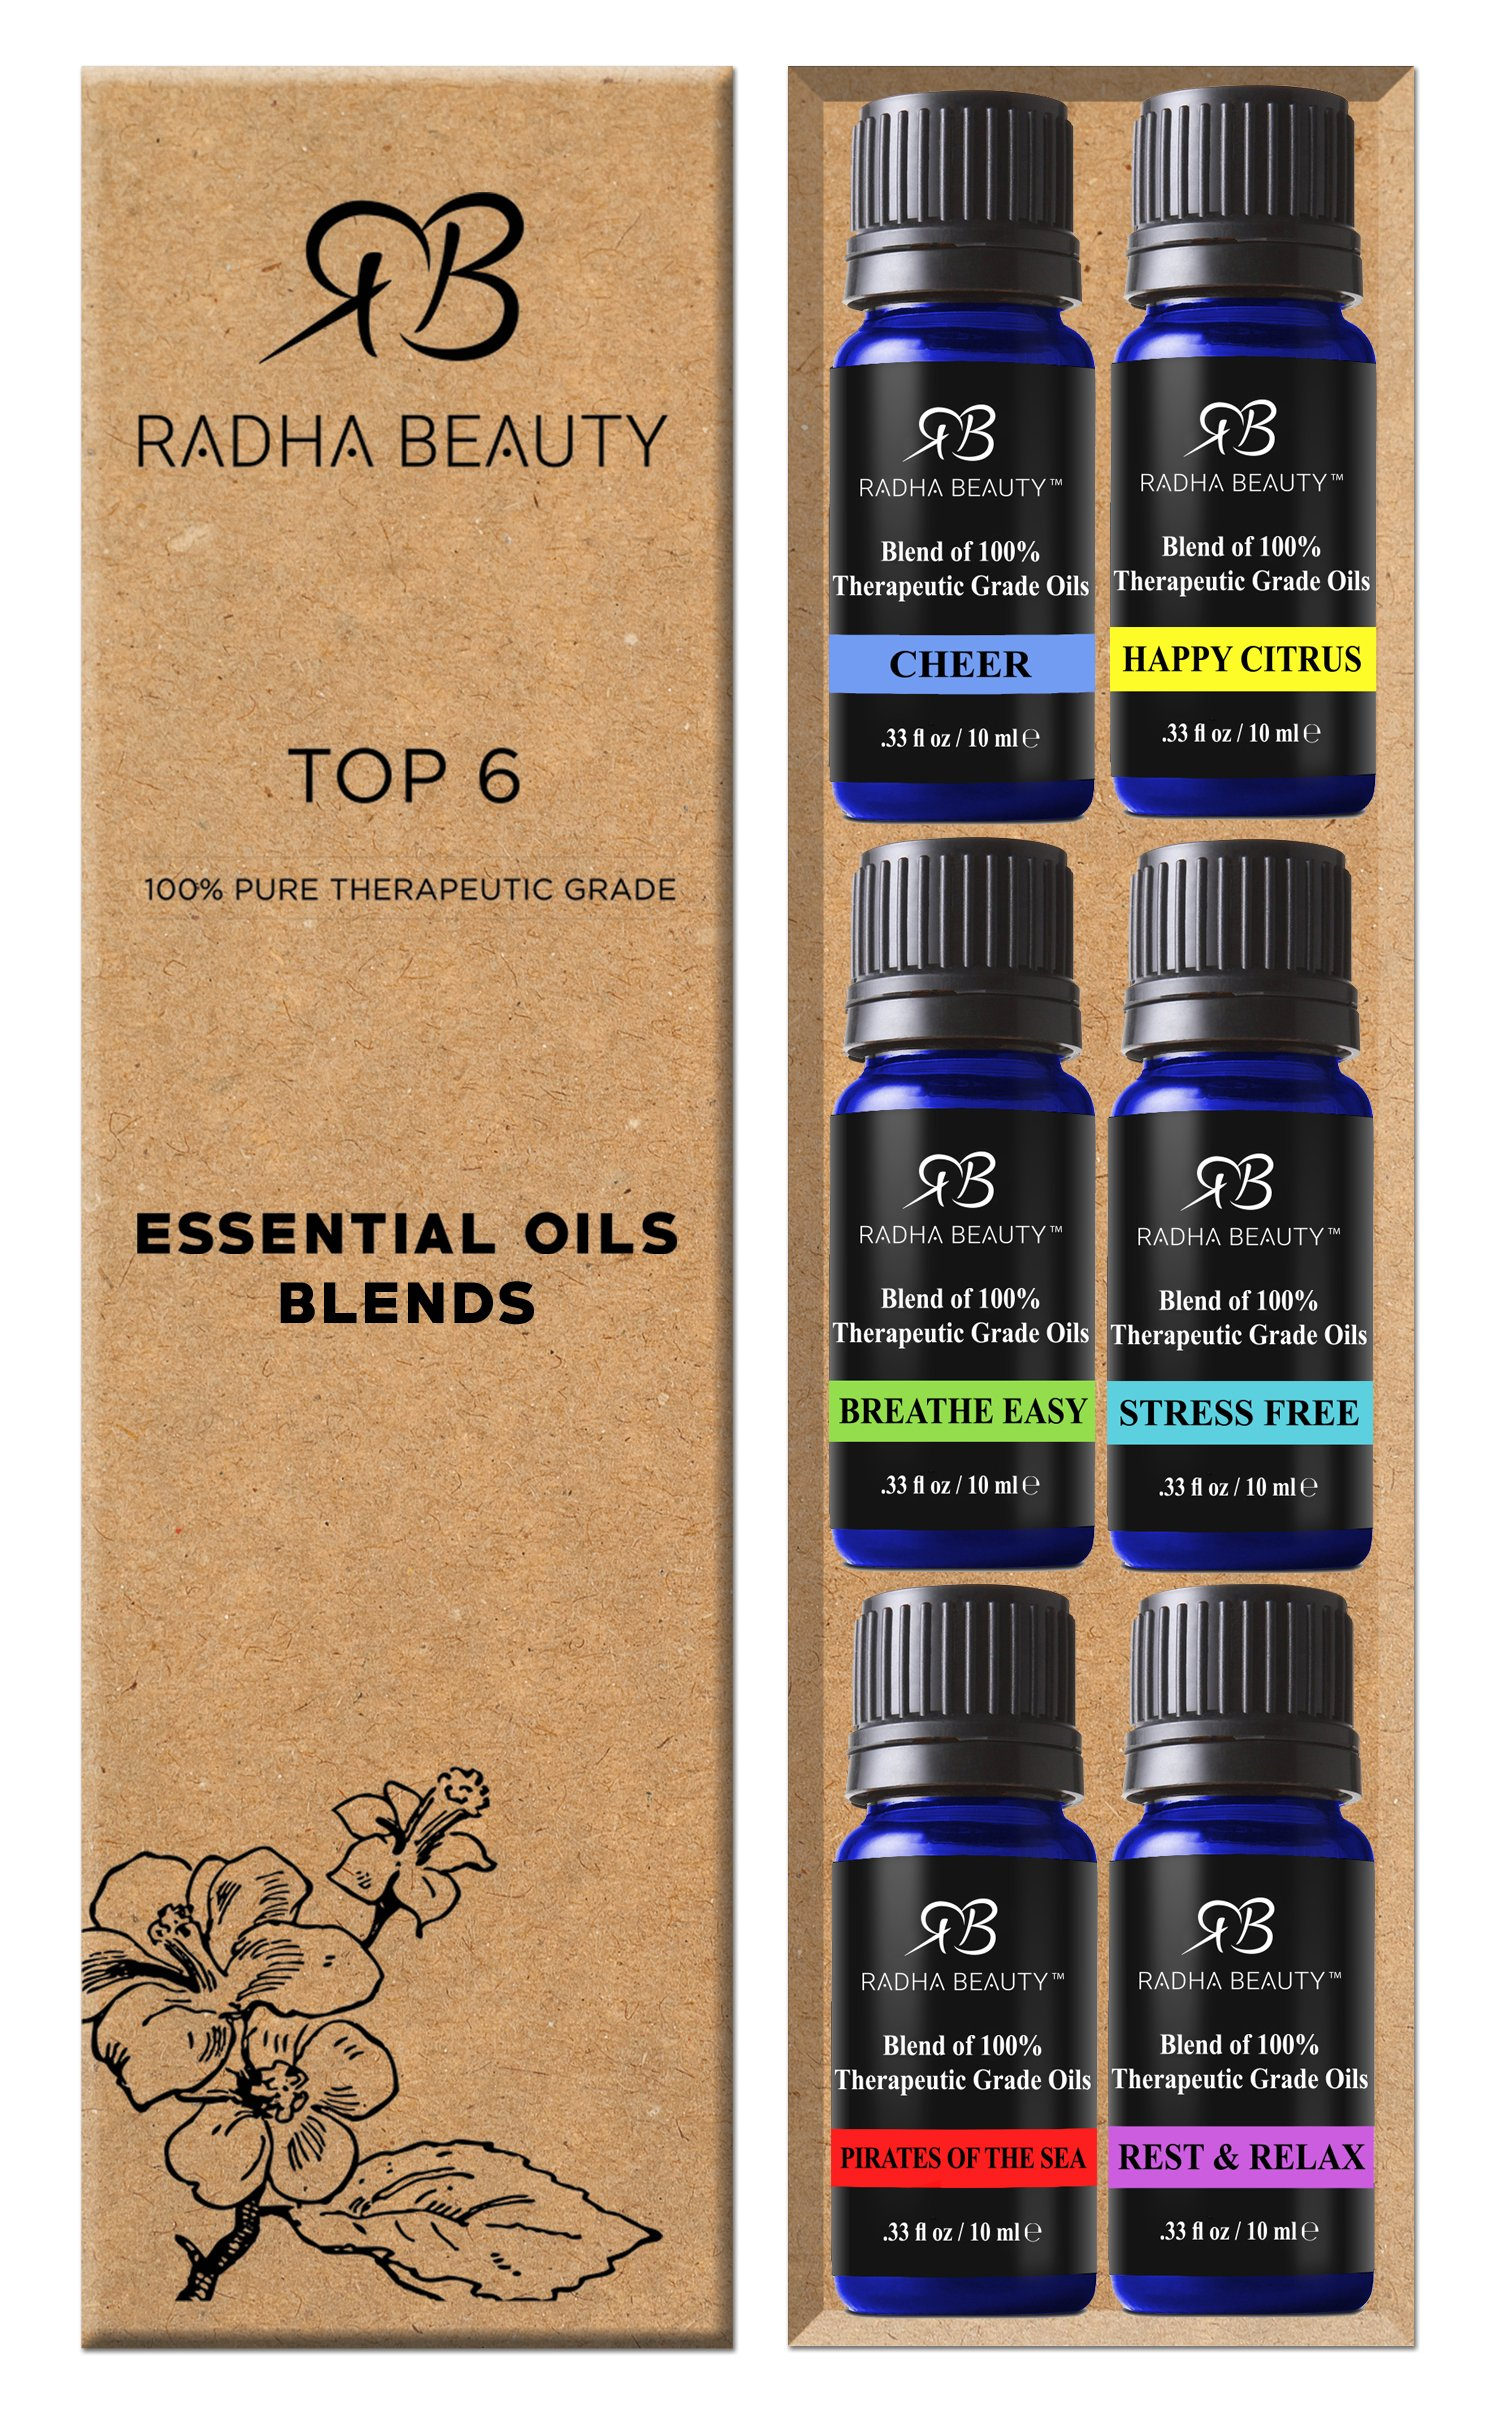 Radha Essential Oil Blends Set - 100% Pure and Natural Kit for Aromatherapy Sea of Thieves, Stress Free, Rest & Relax, Breathe Easy, Cheer, Happy Citrus, great Gift - 6/10 ml by Radha Beauty (Image #2)